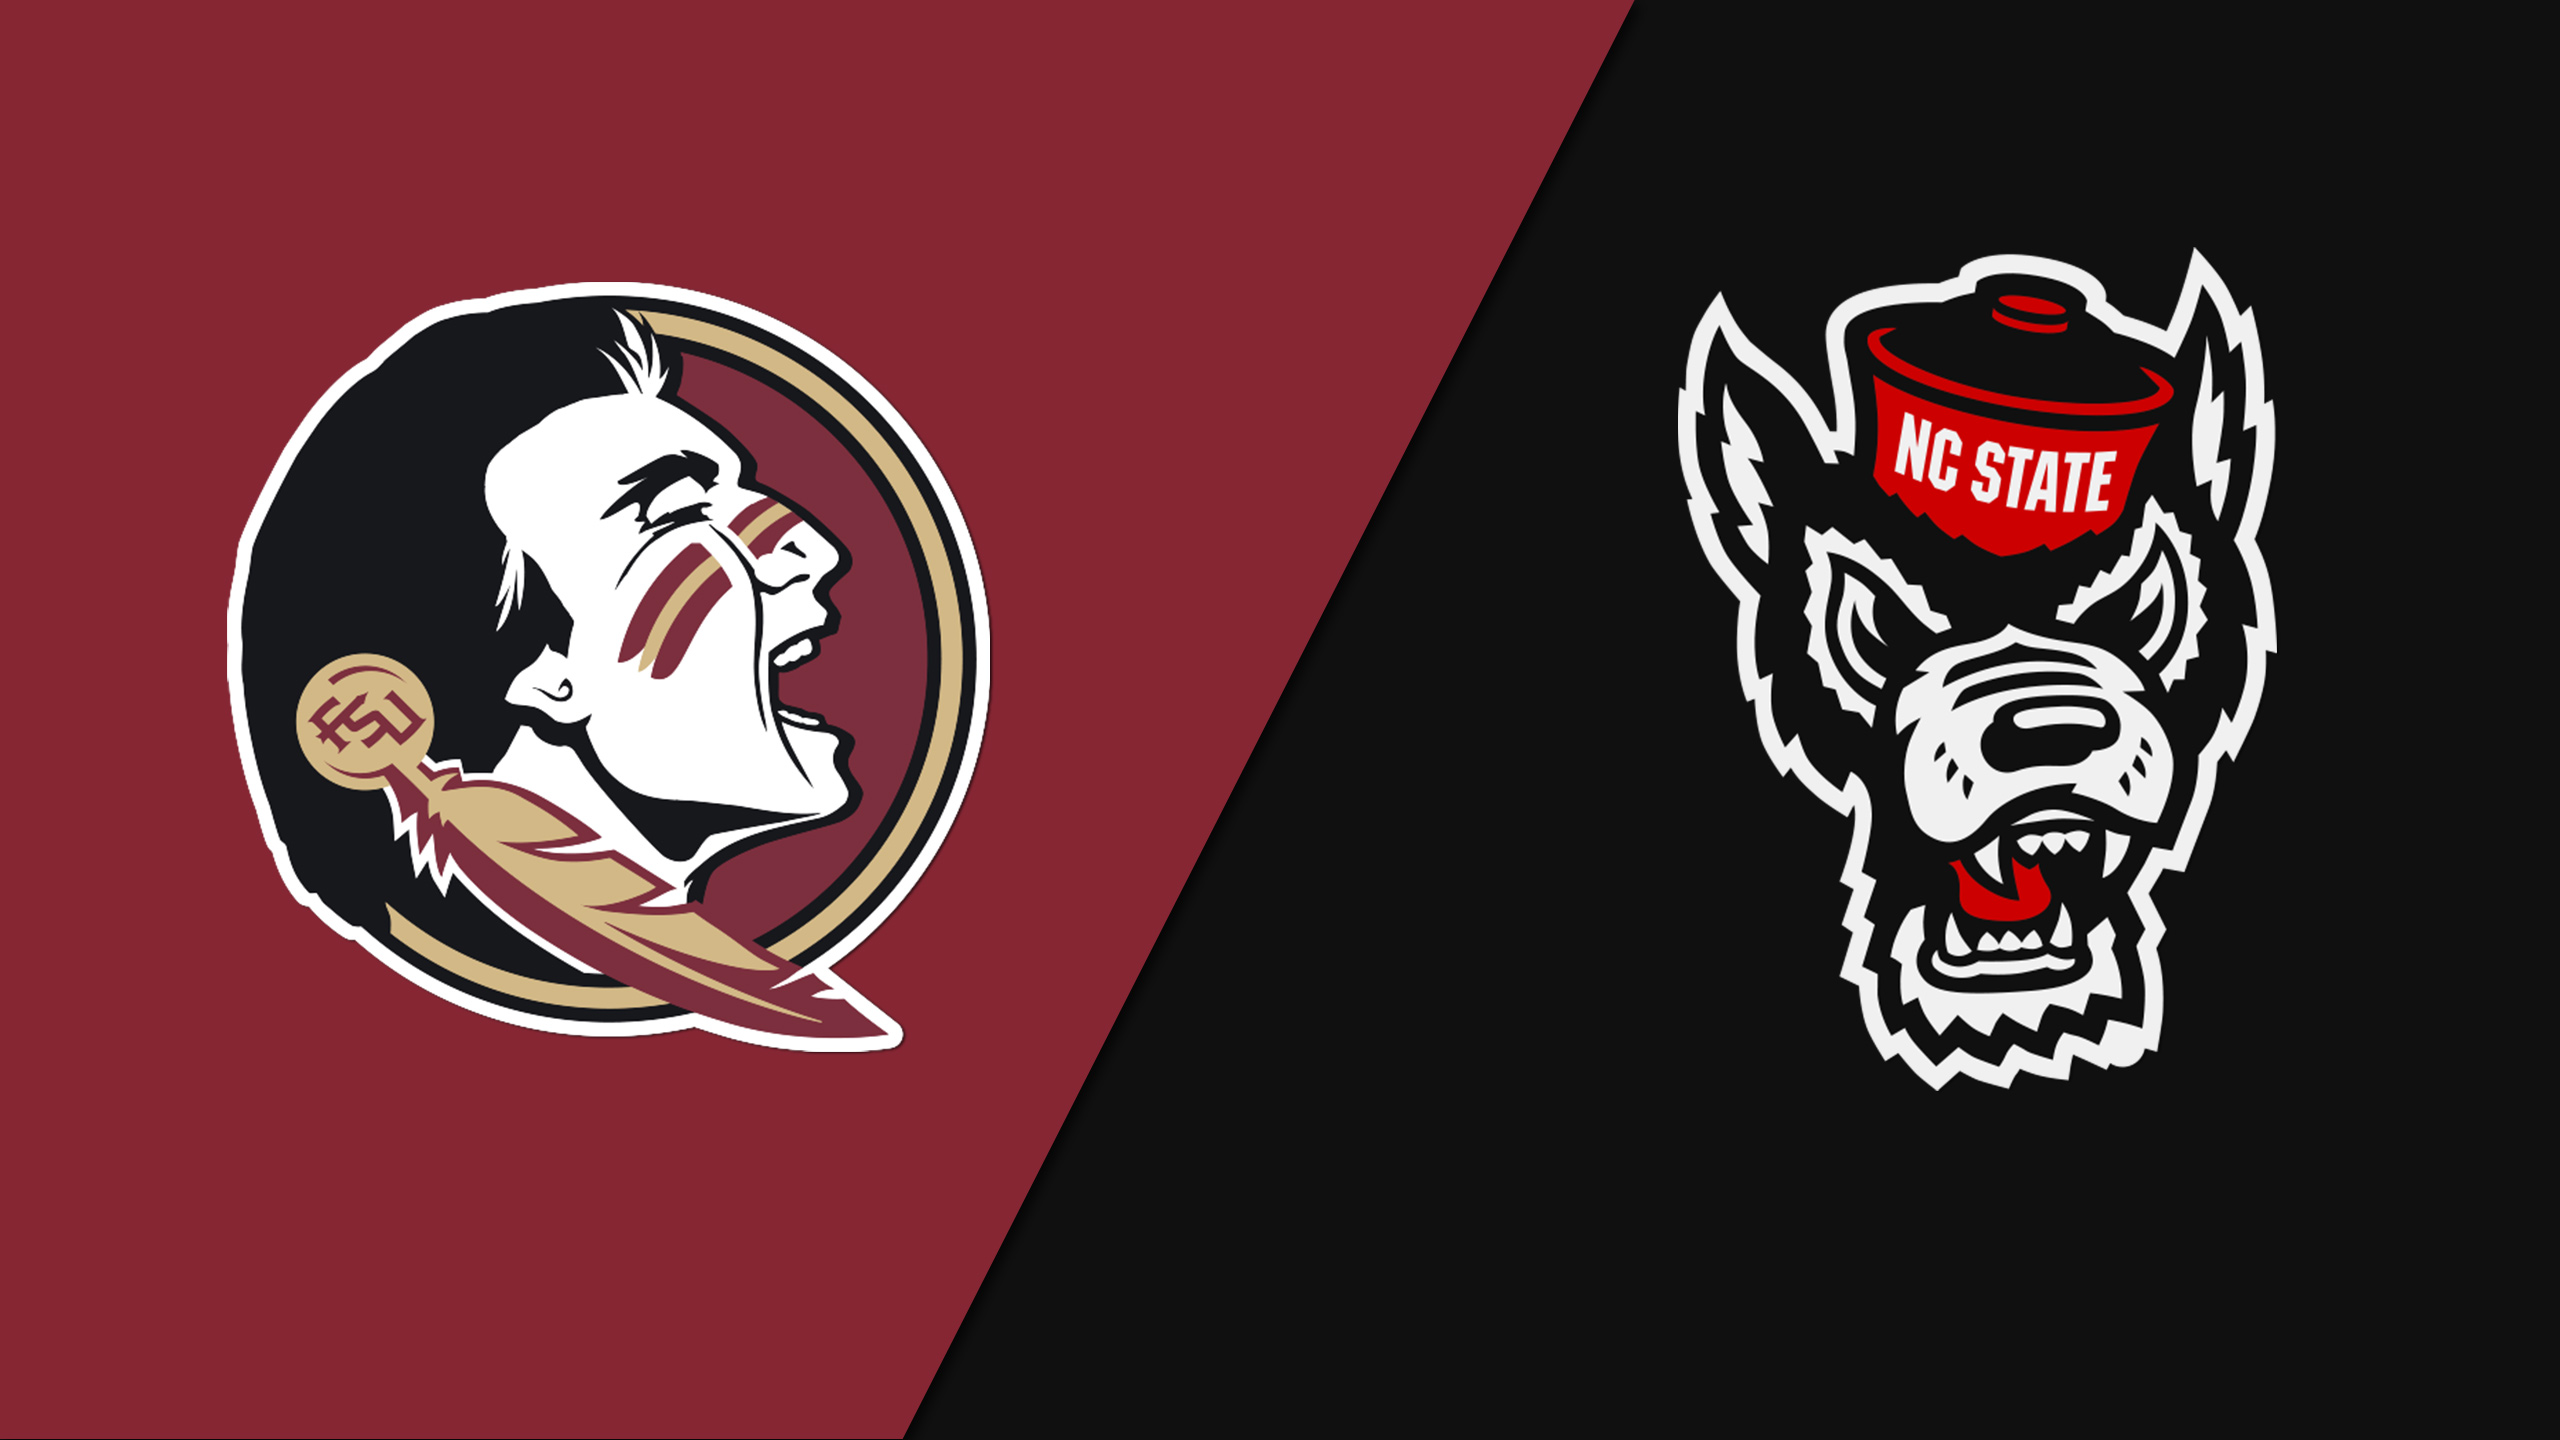 Florida State vs. NC State (Pool C)